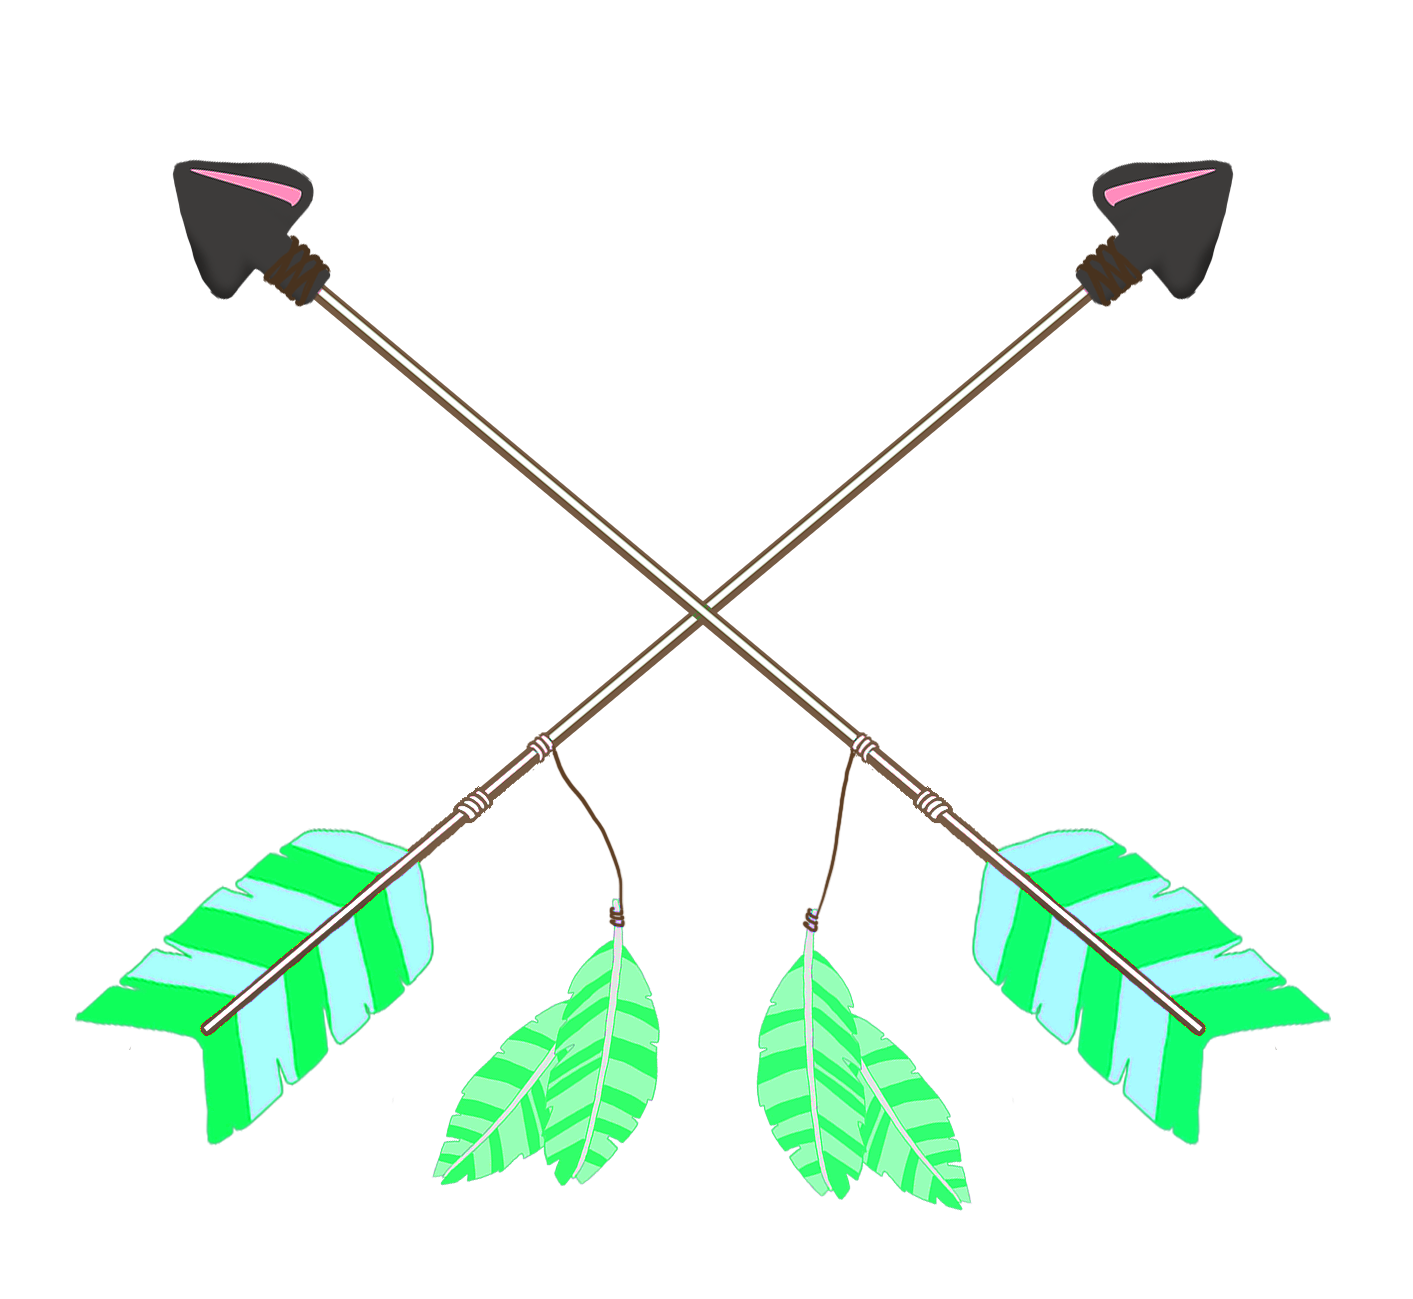 Feathers clipart arrow. All kinds of green